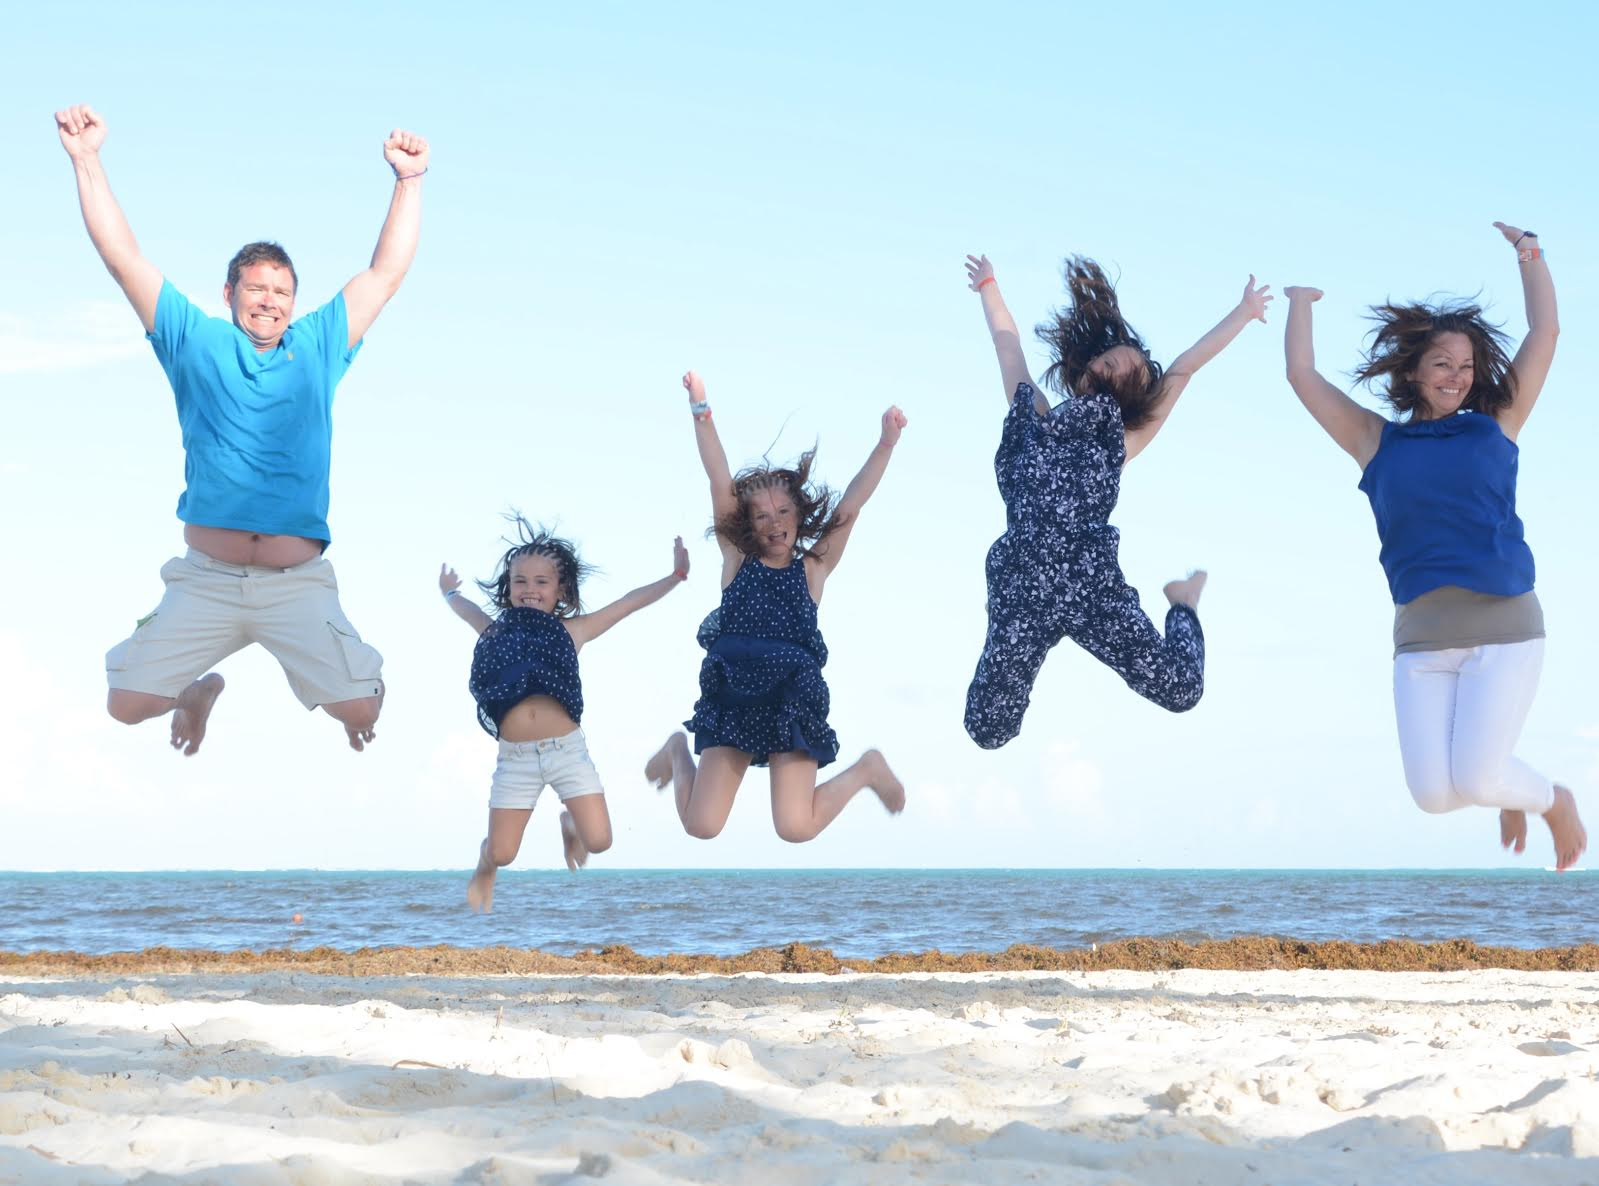 Want your family to JUMP FOR JOY? Take them on Vacation!